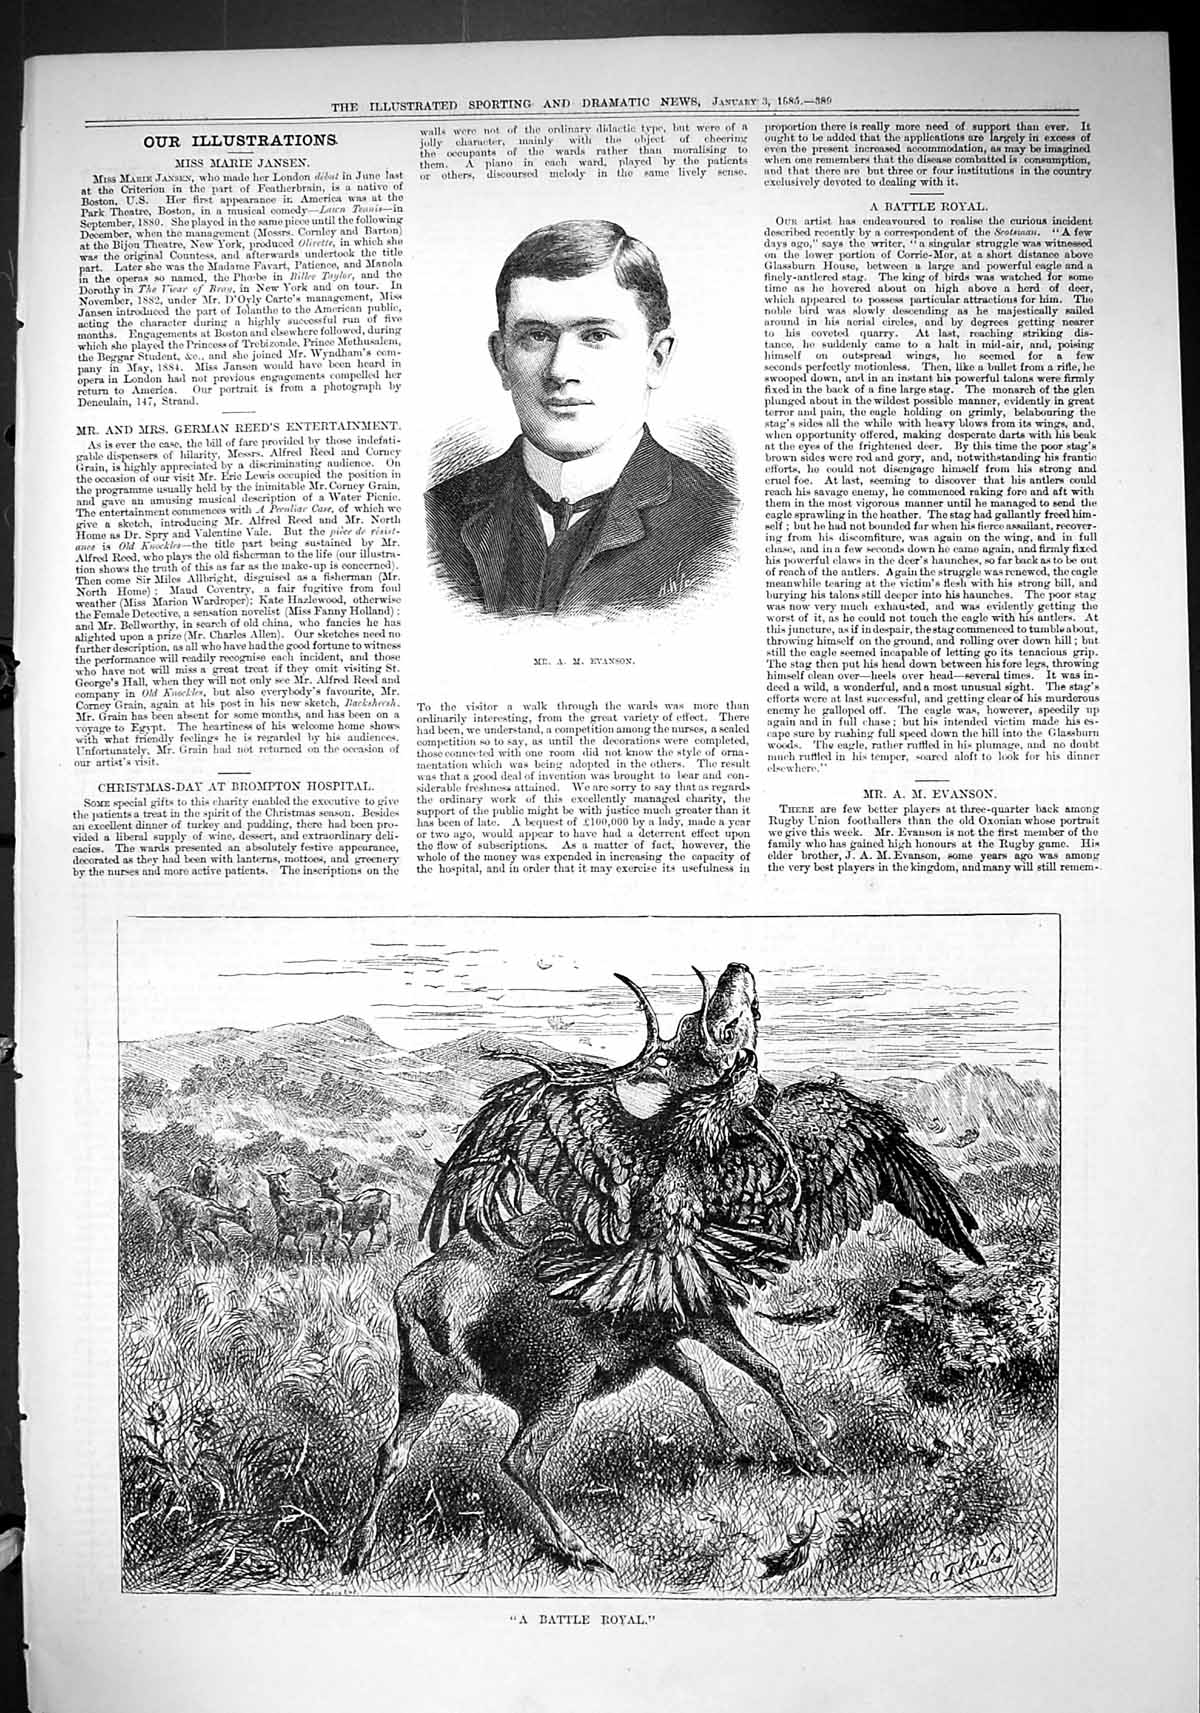 Old-1885-Mr-Evanson-Rugby-Battle-Royal-Stag-Attacked-Eagle-Bird-Prey-Victorian